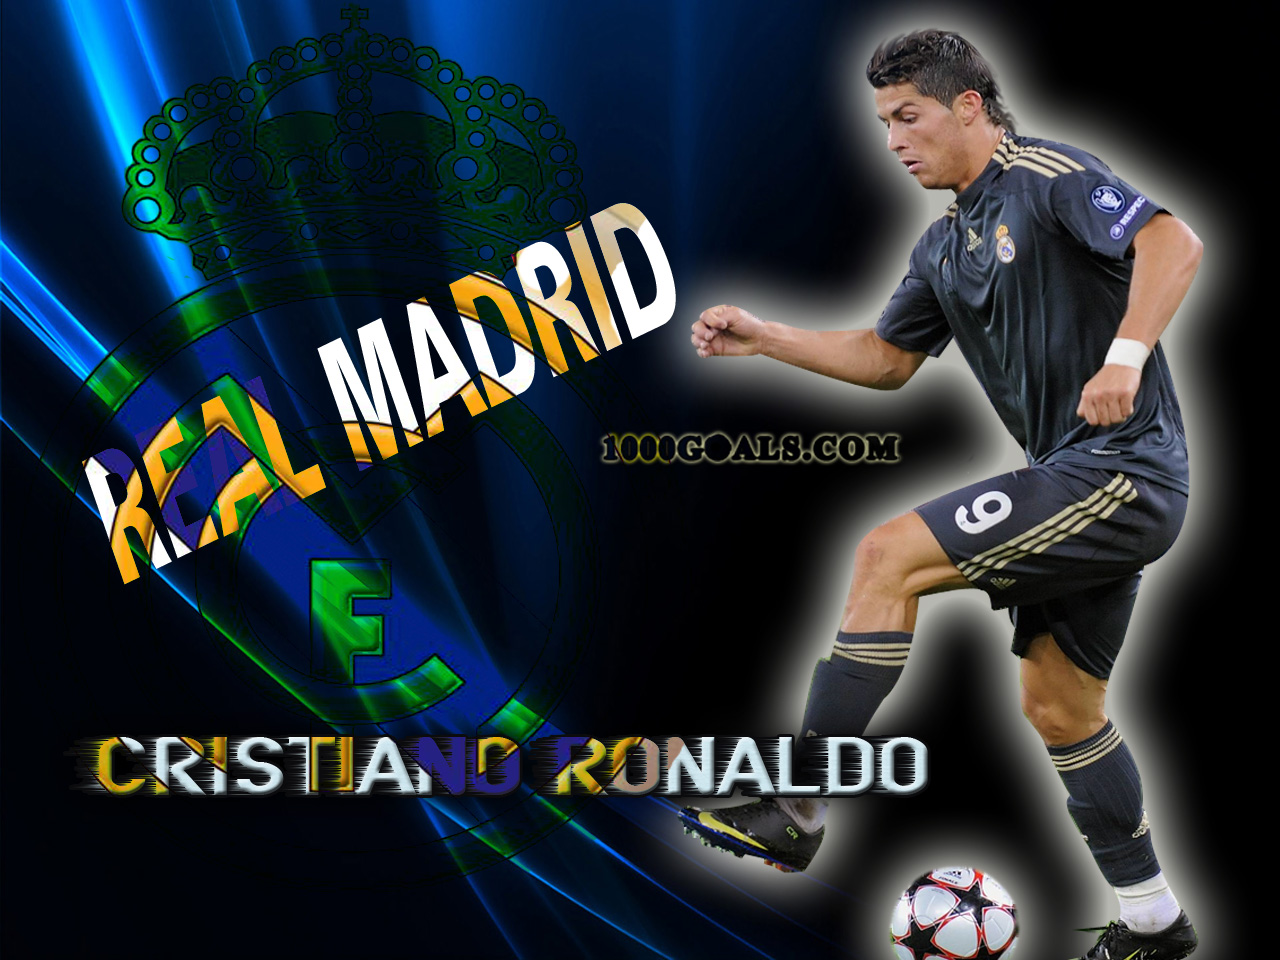 this page also include Cristiano Ronaldo wallpaper too. just enjoy it